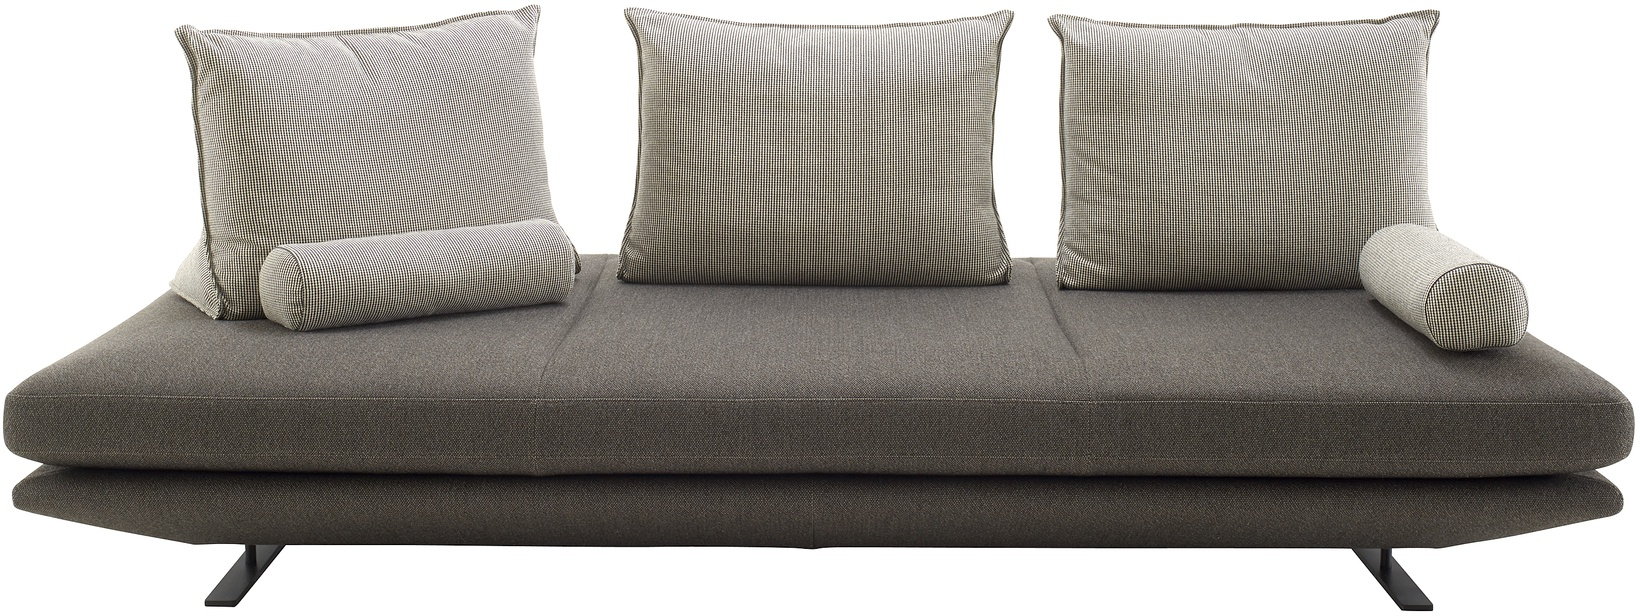 Ligne roset smala sofa preis refil sofa for Liquidation sofa sectionnel